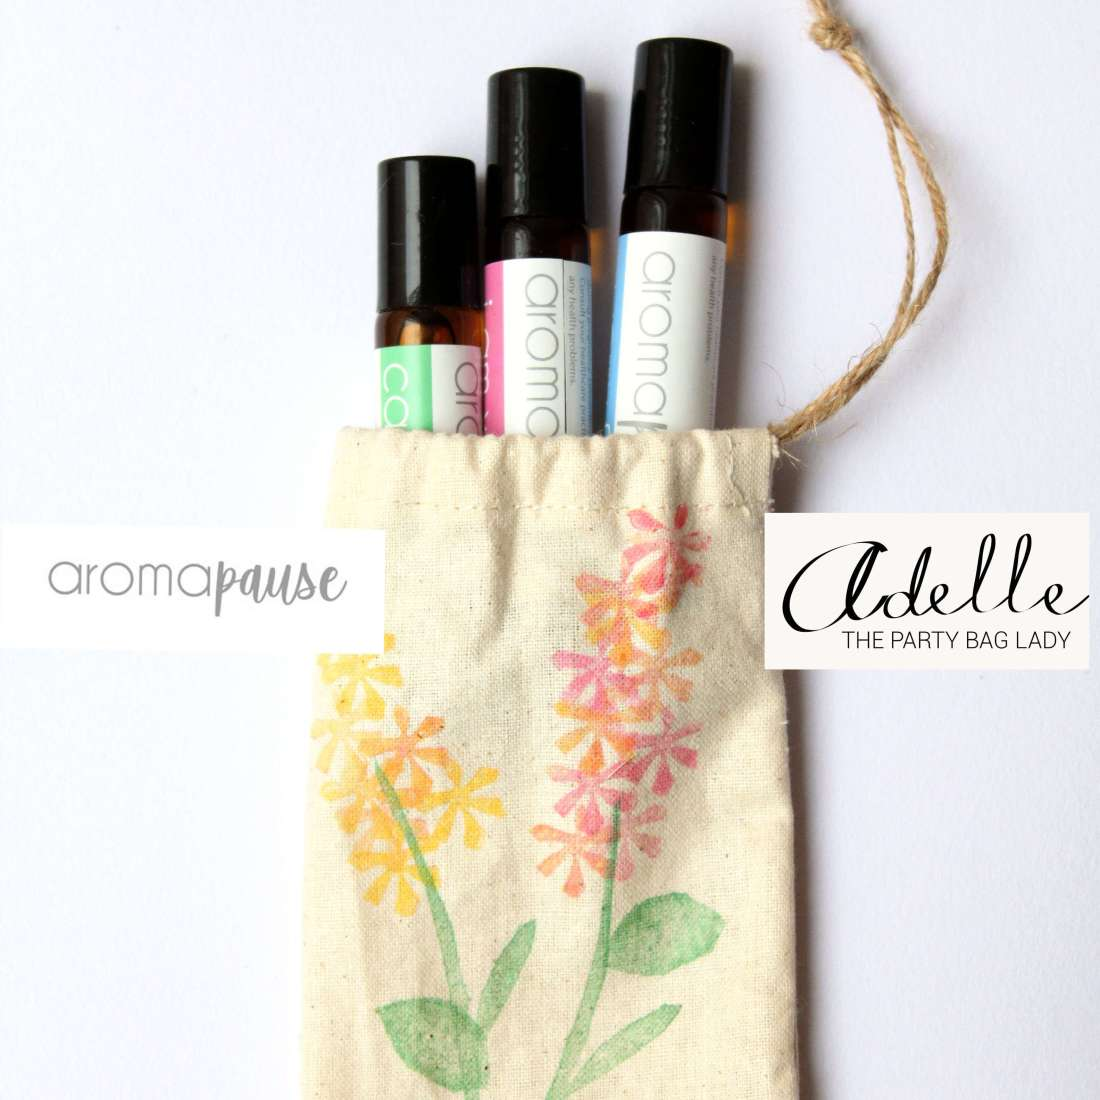 AromaPause - Set of 3 Aromatherapy essential oil rollers in carry bag